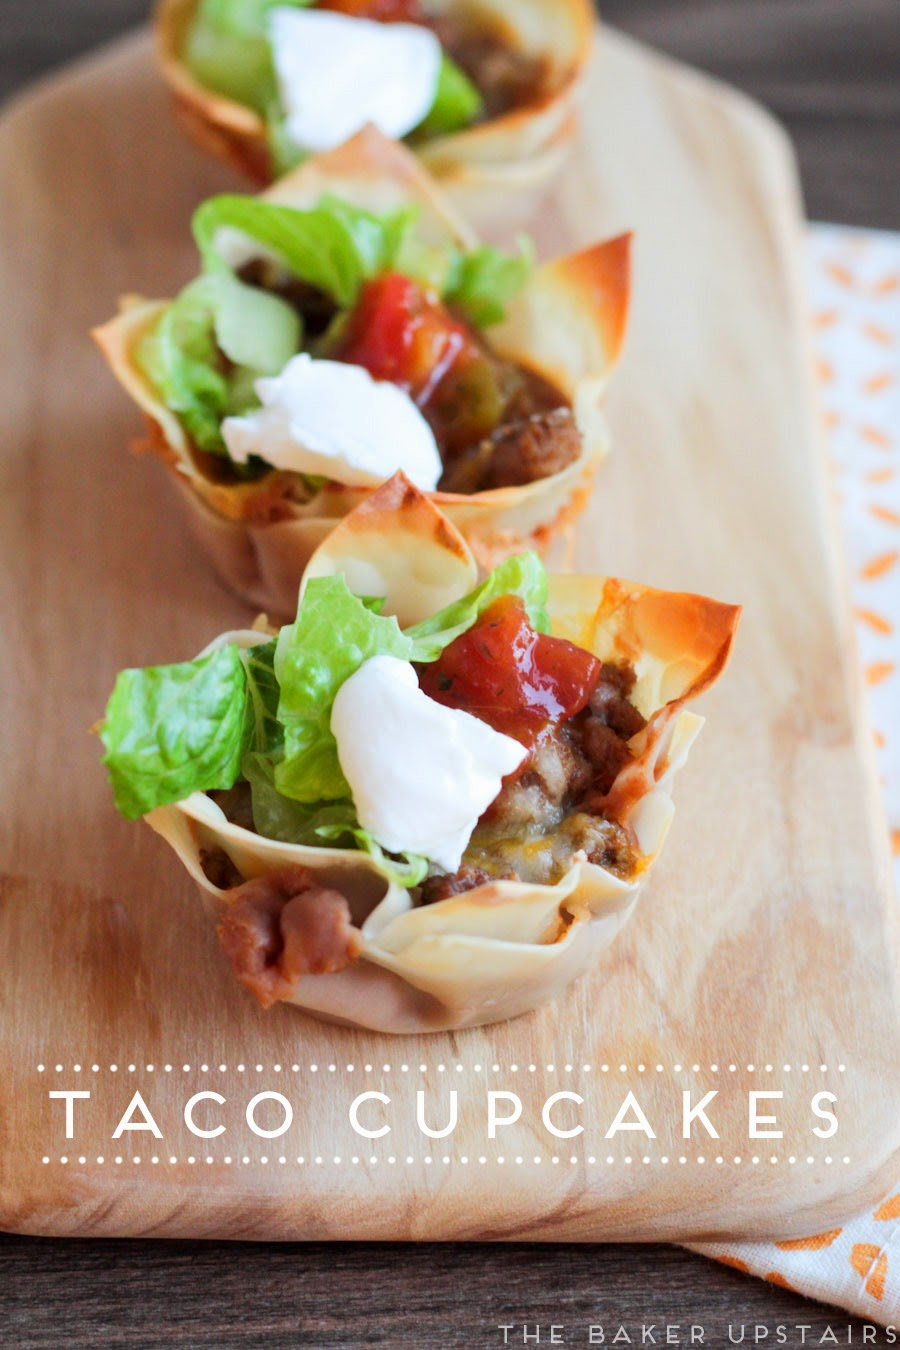 The Baker Upstairs: taco cupcakes